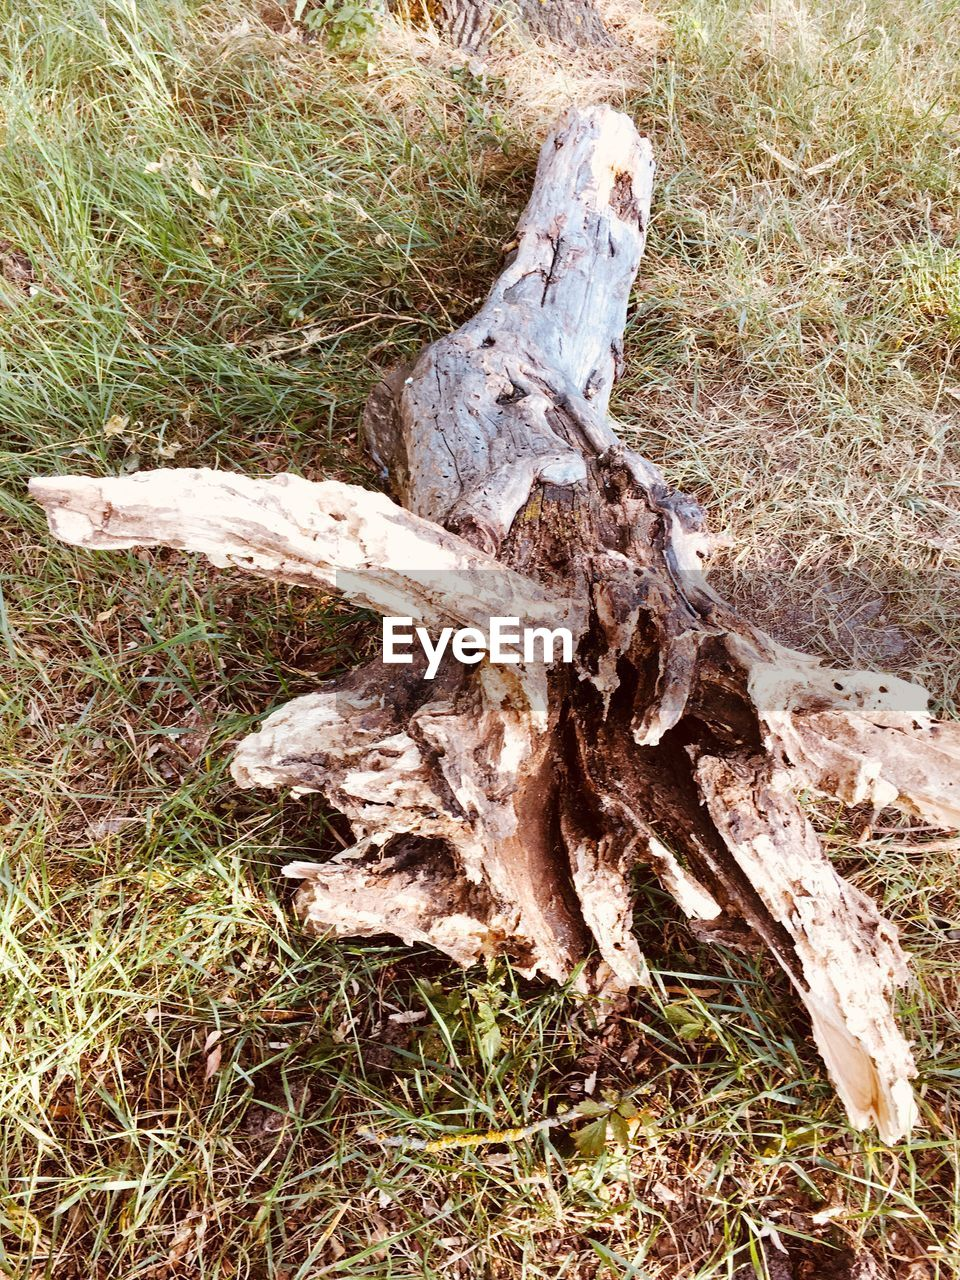 land, plant, field, grass, tree, nature, no people, wood - material, bone, day, forest, close-up, high angle view, tree trunk, outdoors, wood, log, trunk, animal skull, bark, dead plant, driftwood